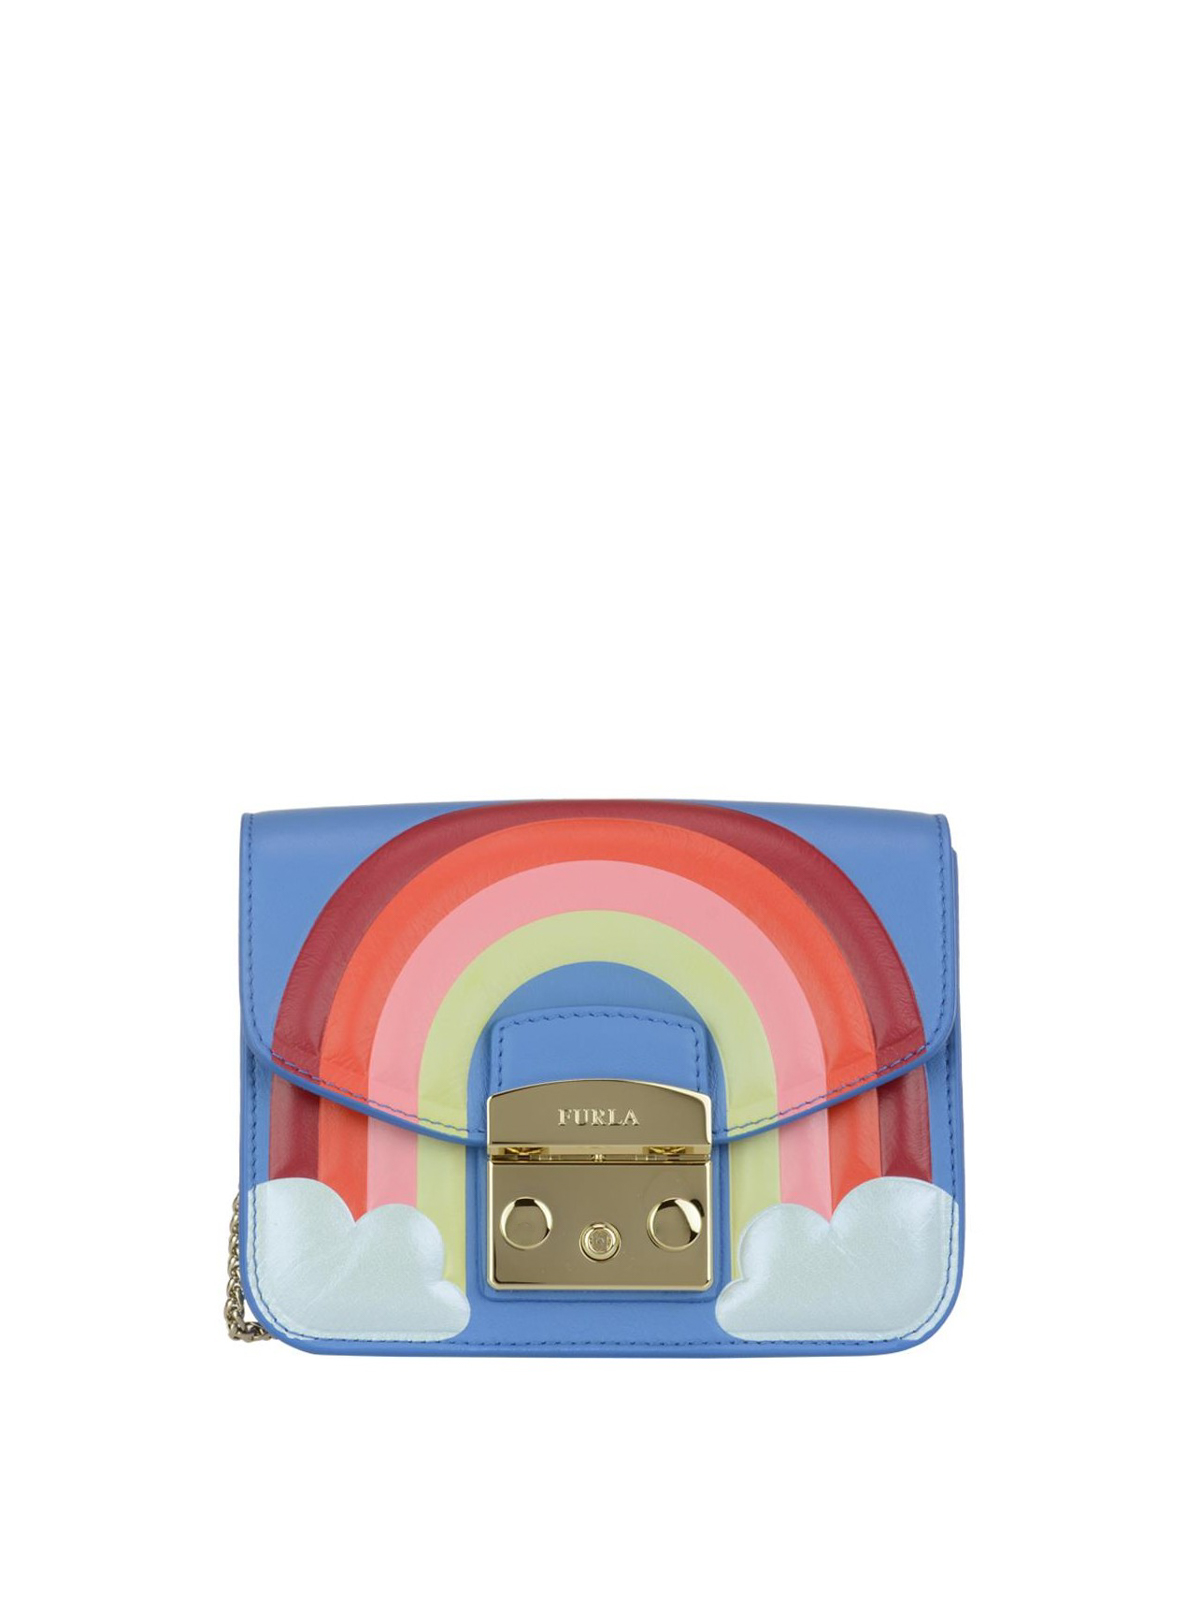 Furla Cross Body Bags Metropolis Fantasia Rainbow Bag